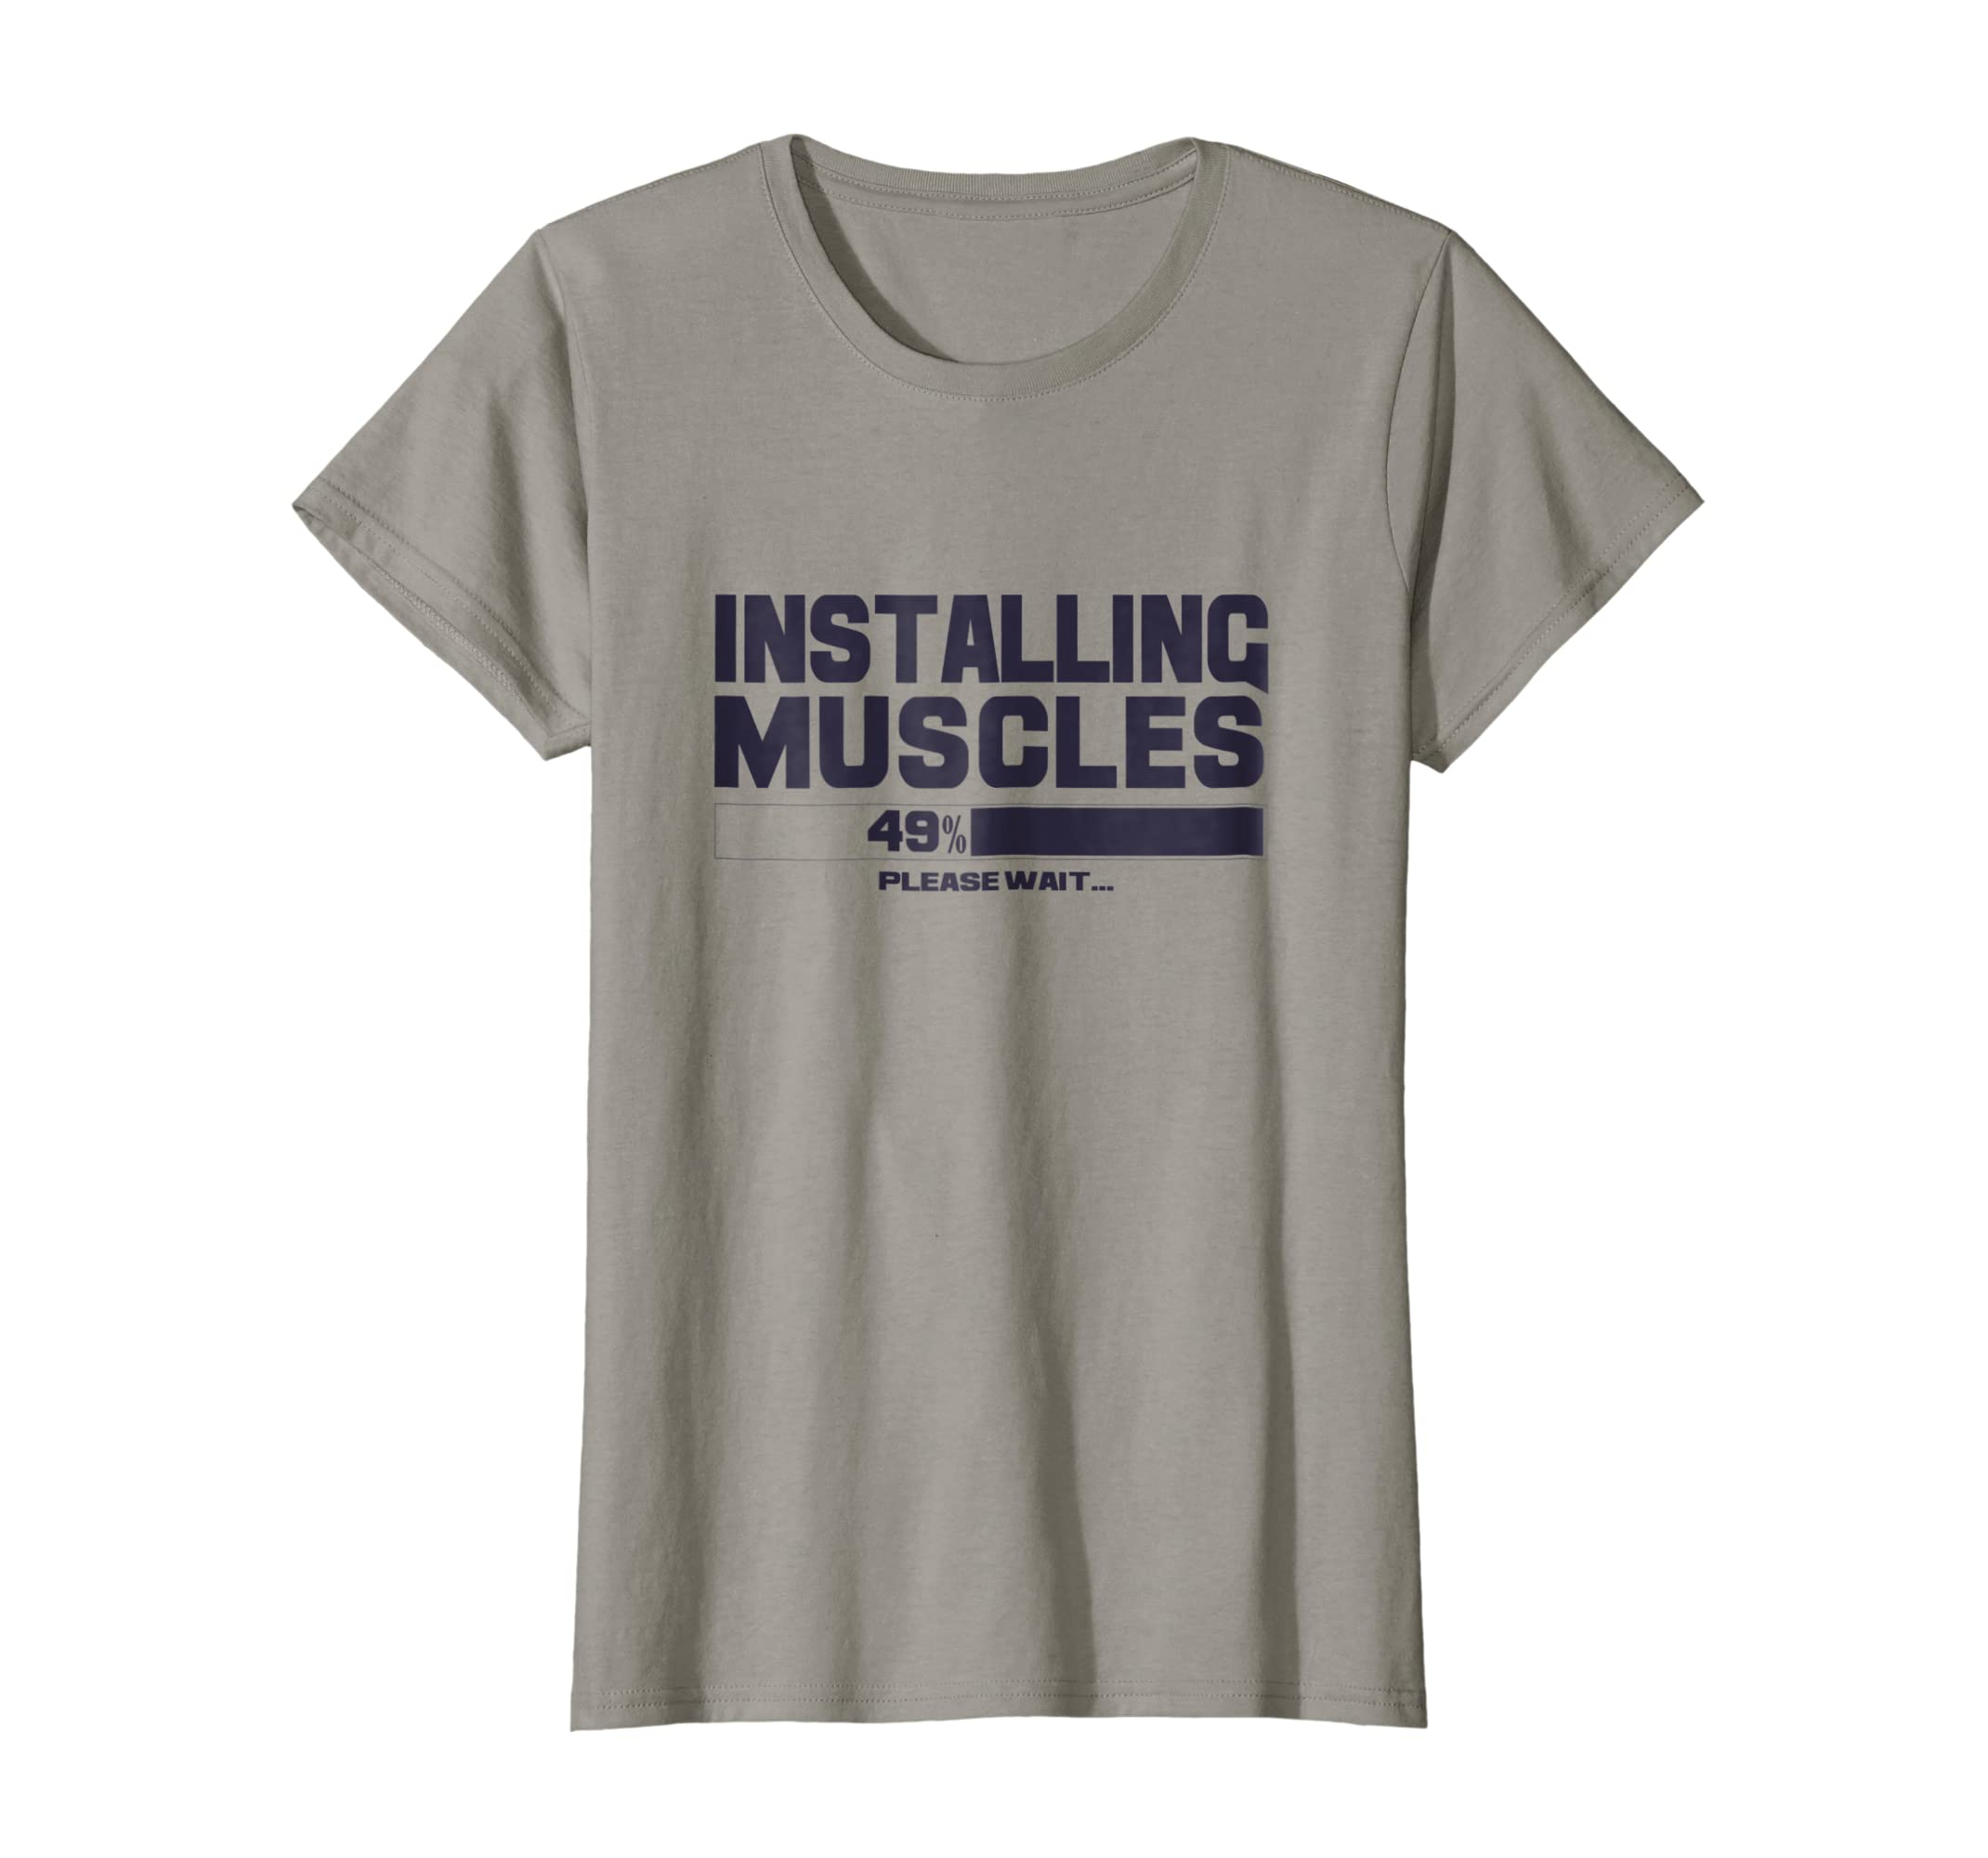 Installing Muscles T-Shirt Funny Sport Gym Bodybuilding Tee Humor & Funny Quote T-Shirts